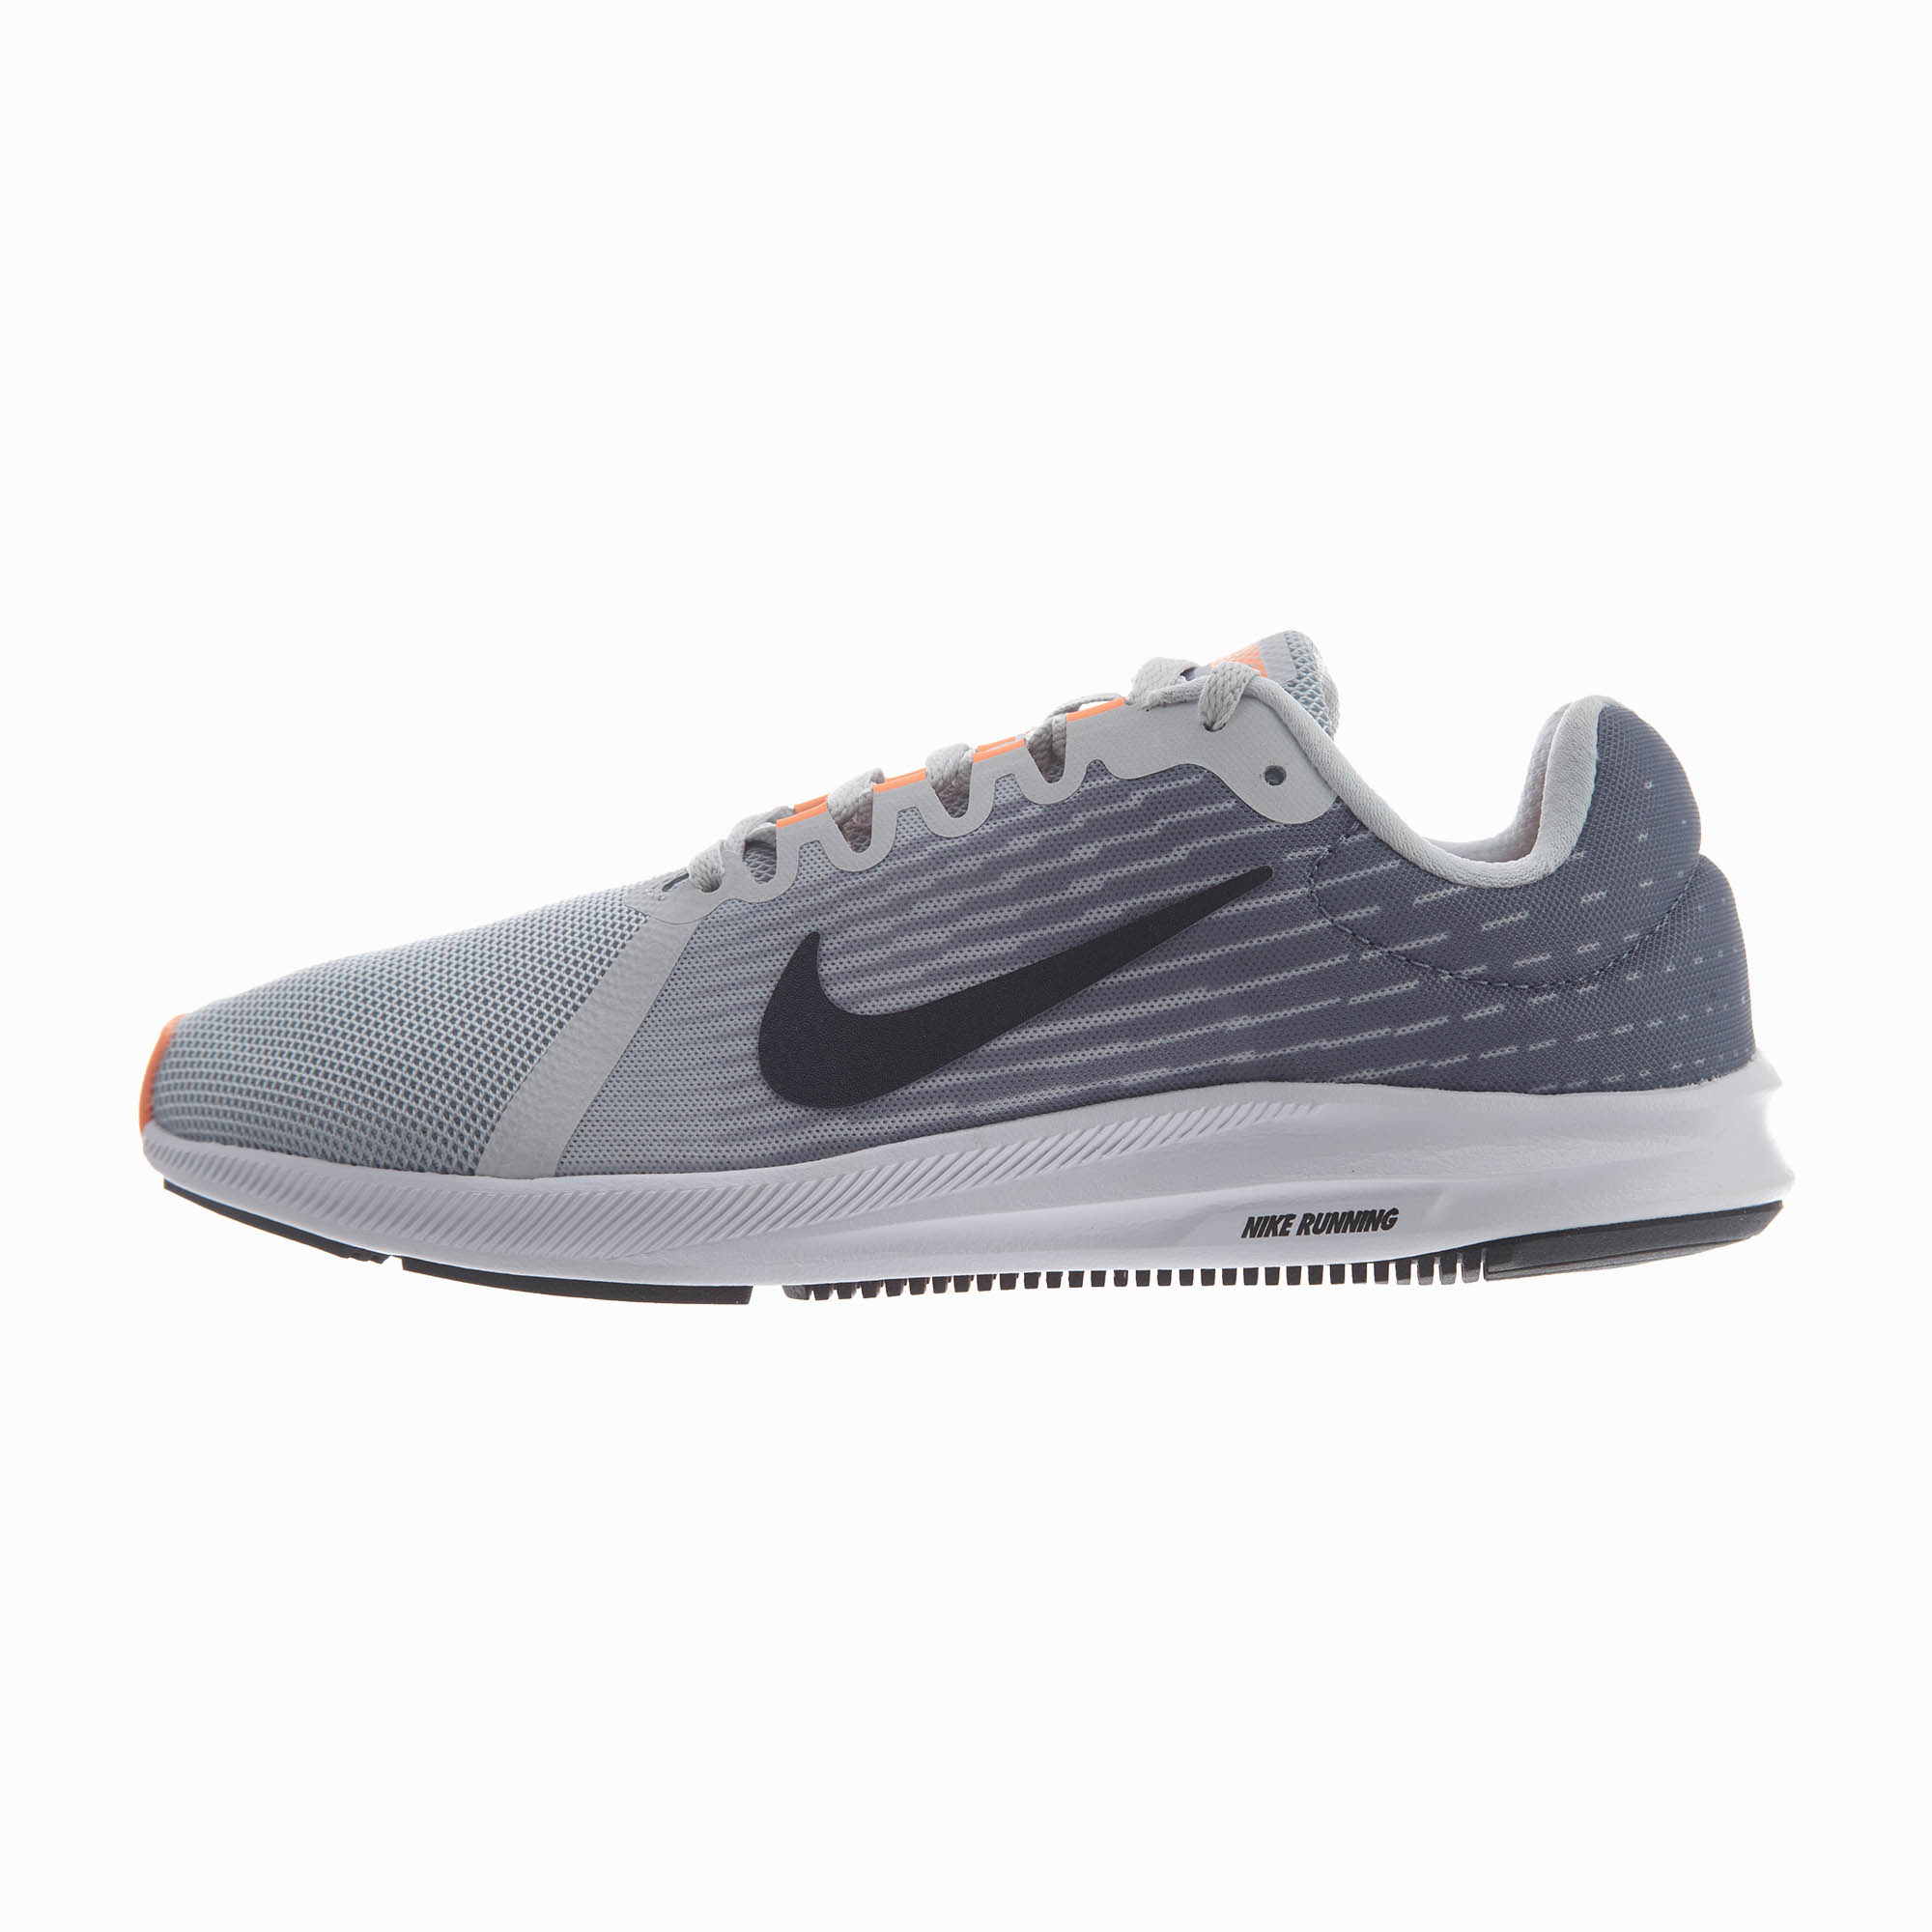 d35ea1dbbdf Details about Nike Womens Downshifter 8 Running Shoes 908994-009